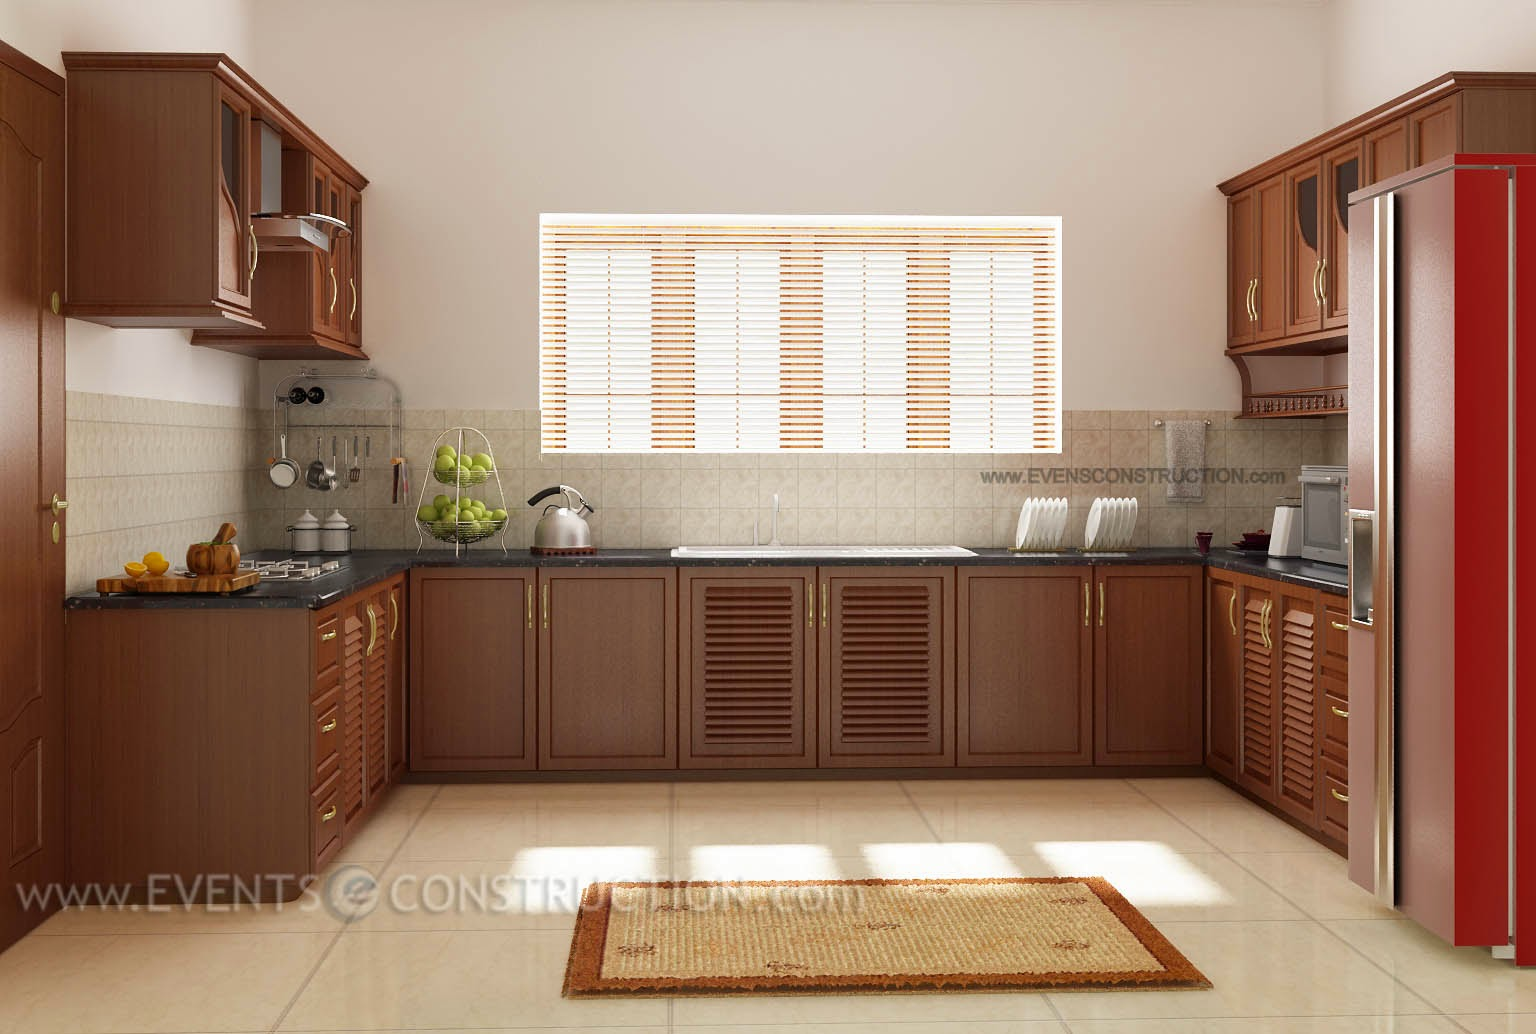 Evens Construction Pvt Ltd Interior Of A Kerala Kitchen